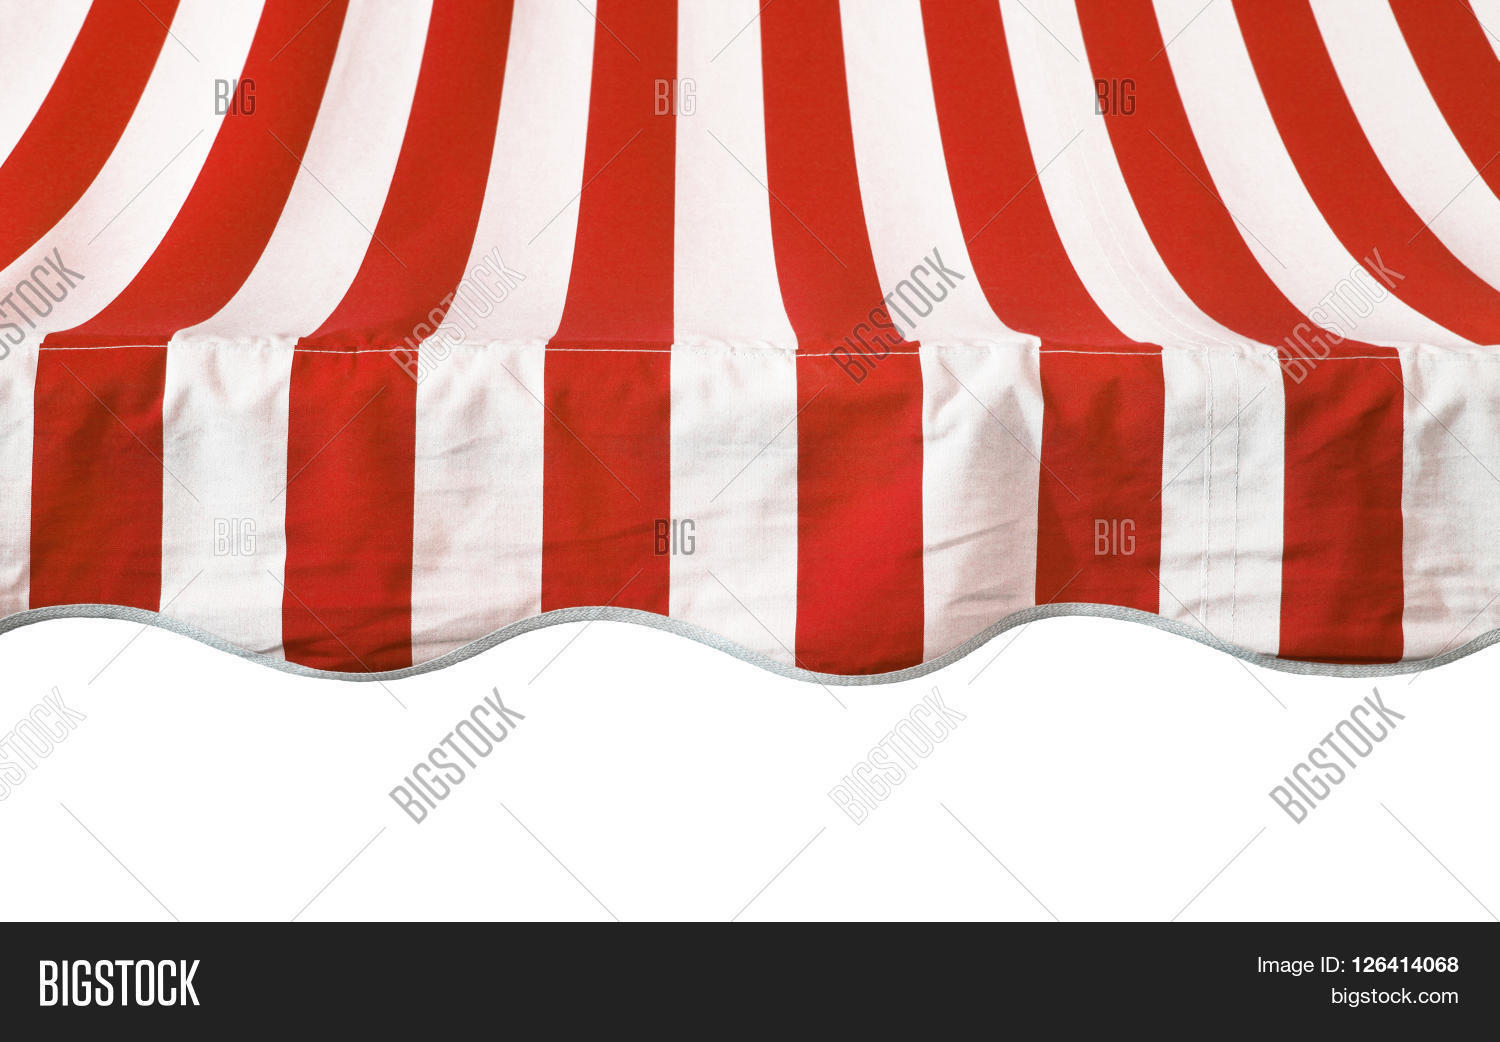 Red White Striped Awning Overhang Image & Photo   Bigstock